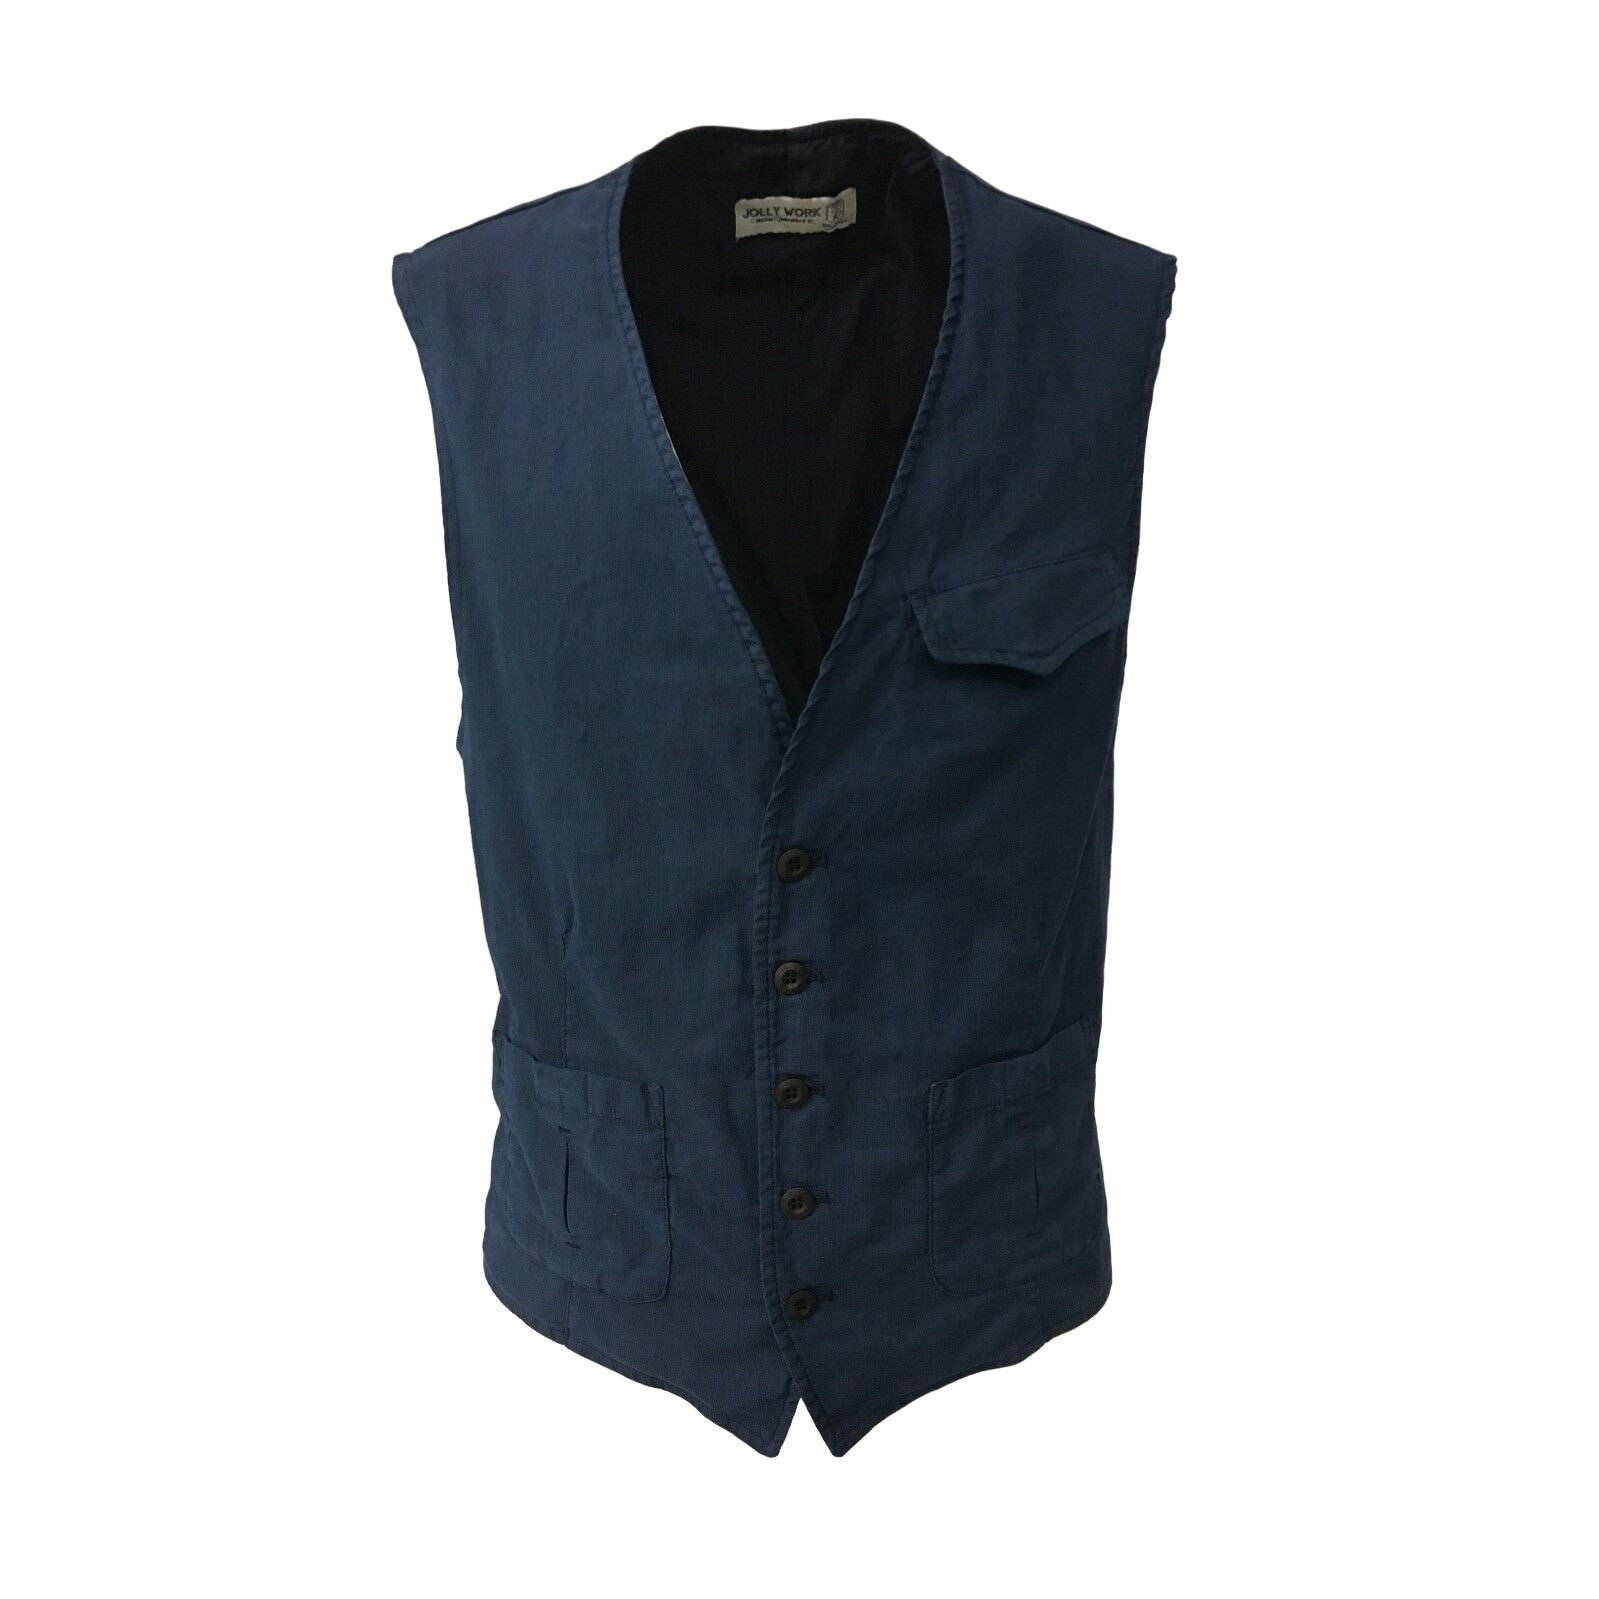 JOLLY WORK vest man bluee mod PUCCINI 98% cotton 2% elastane MADE IN ITALY